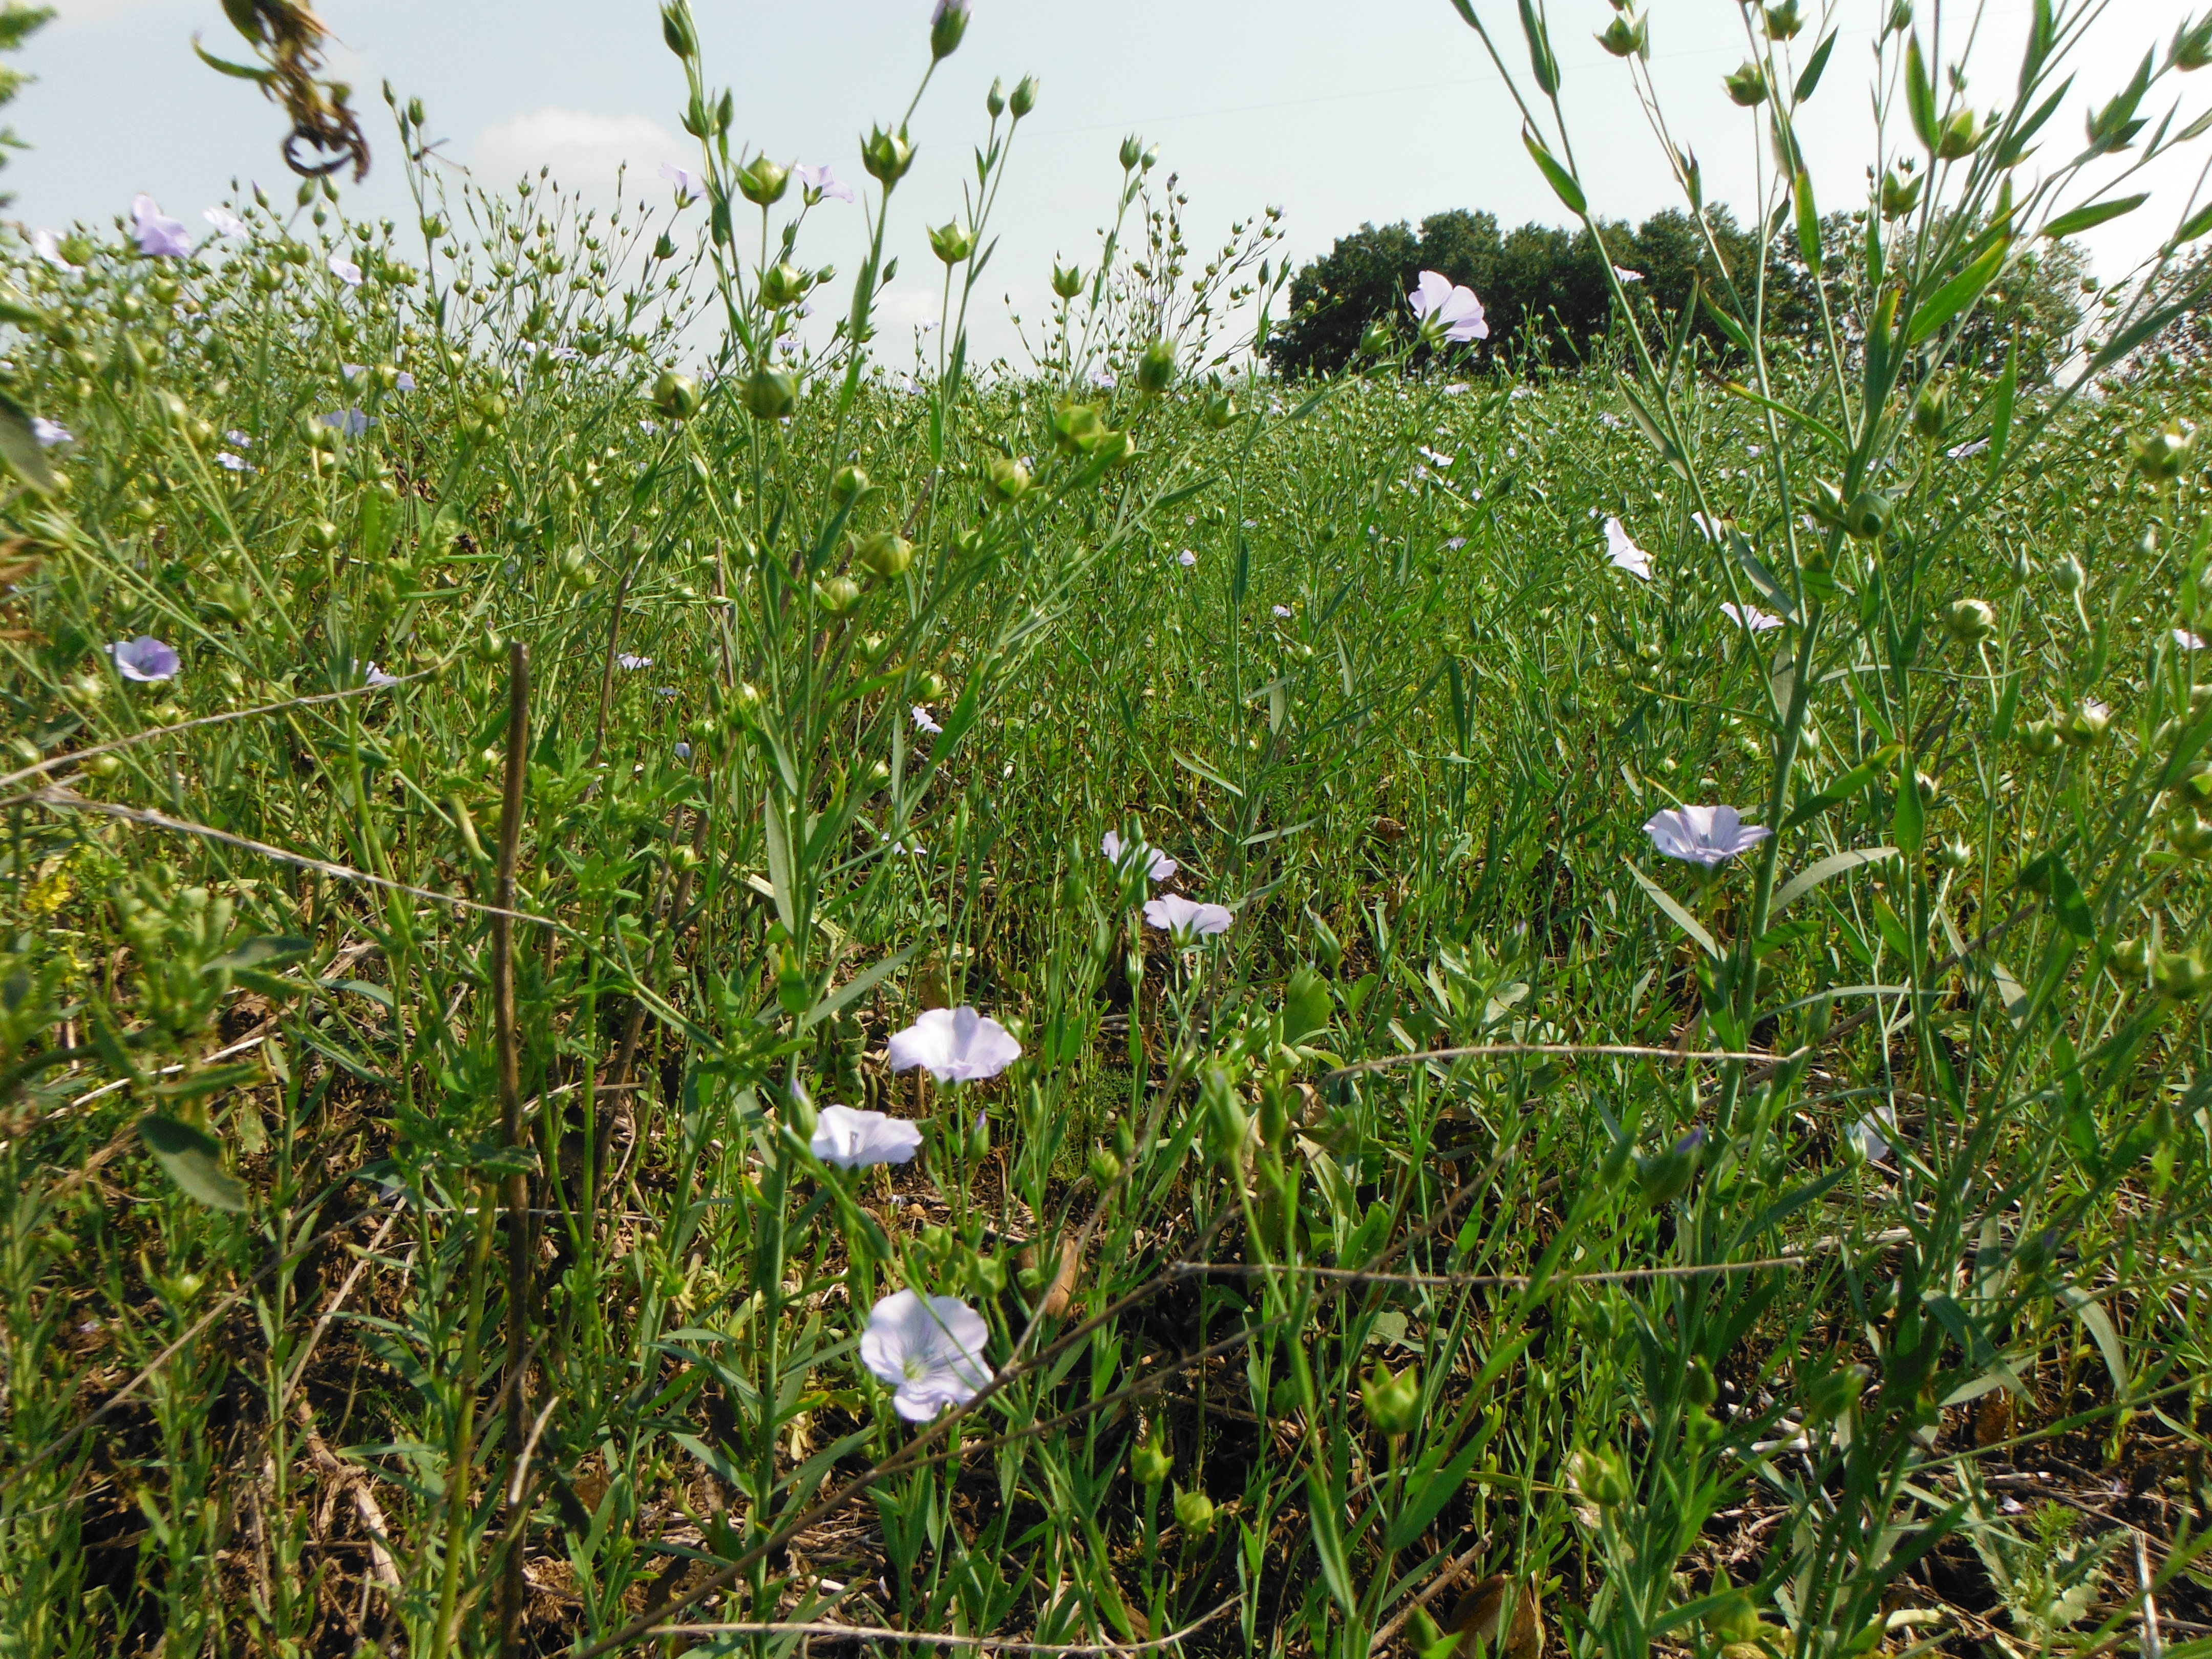 Middle of a flax field